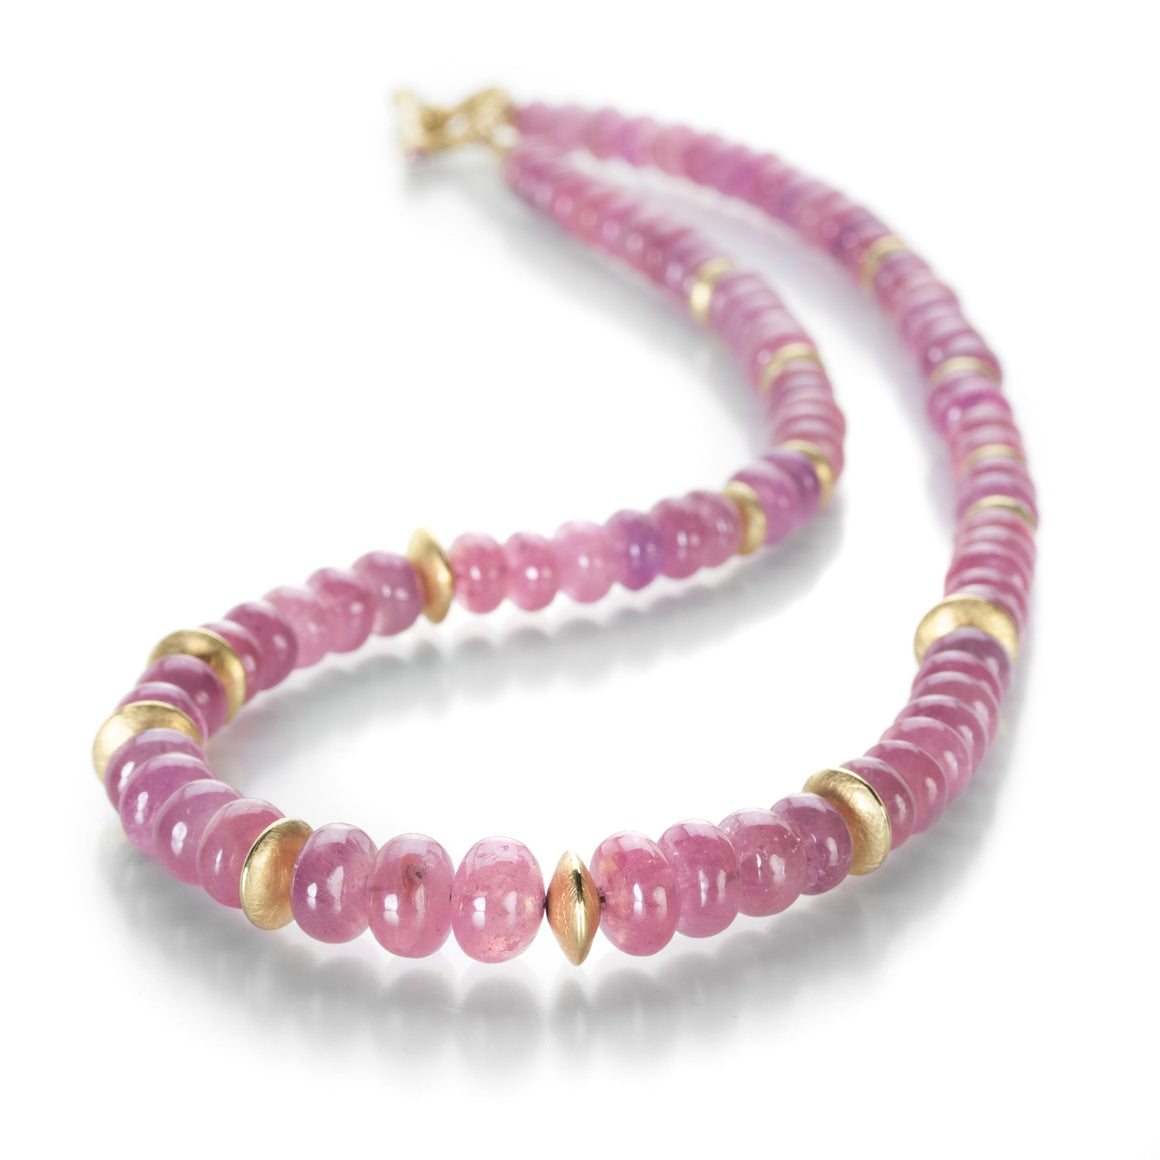 Barbara Heinrich Smooth Pink Sapphire Beaded Necklace | Quadrum Gallery